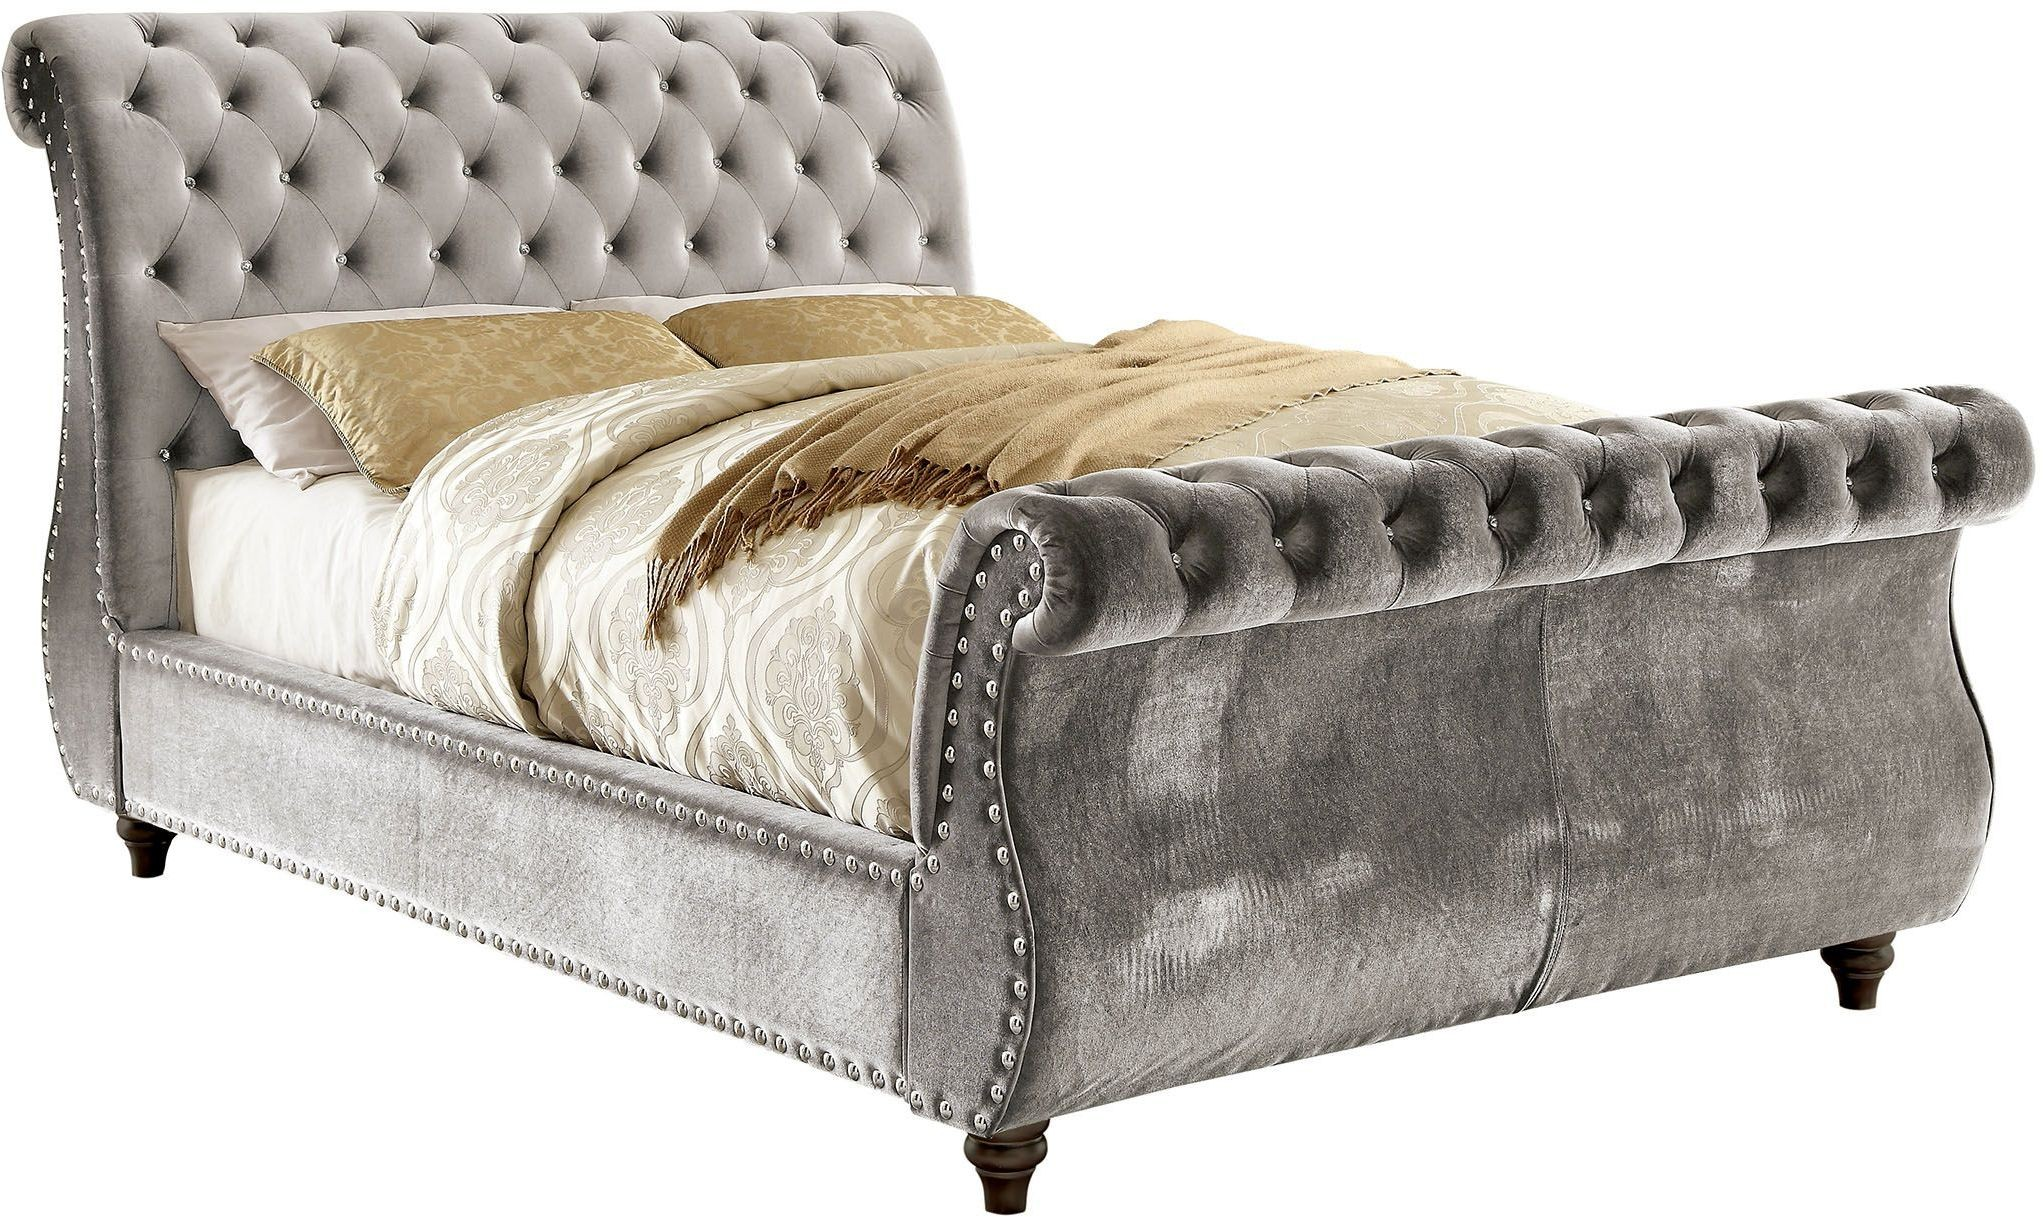 Noella Gray King Upholstered Sleigh Bed Cm Gy Ek